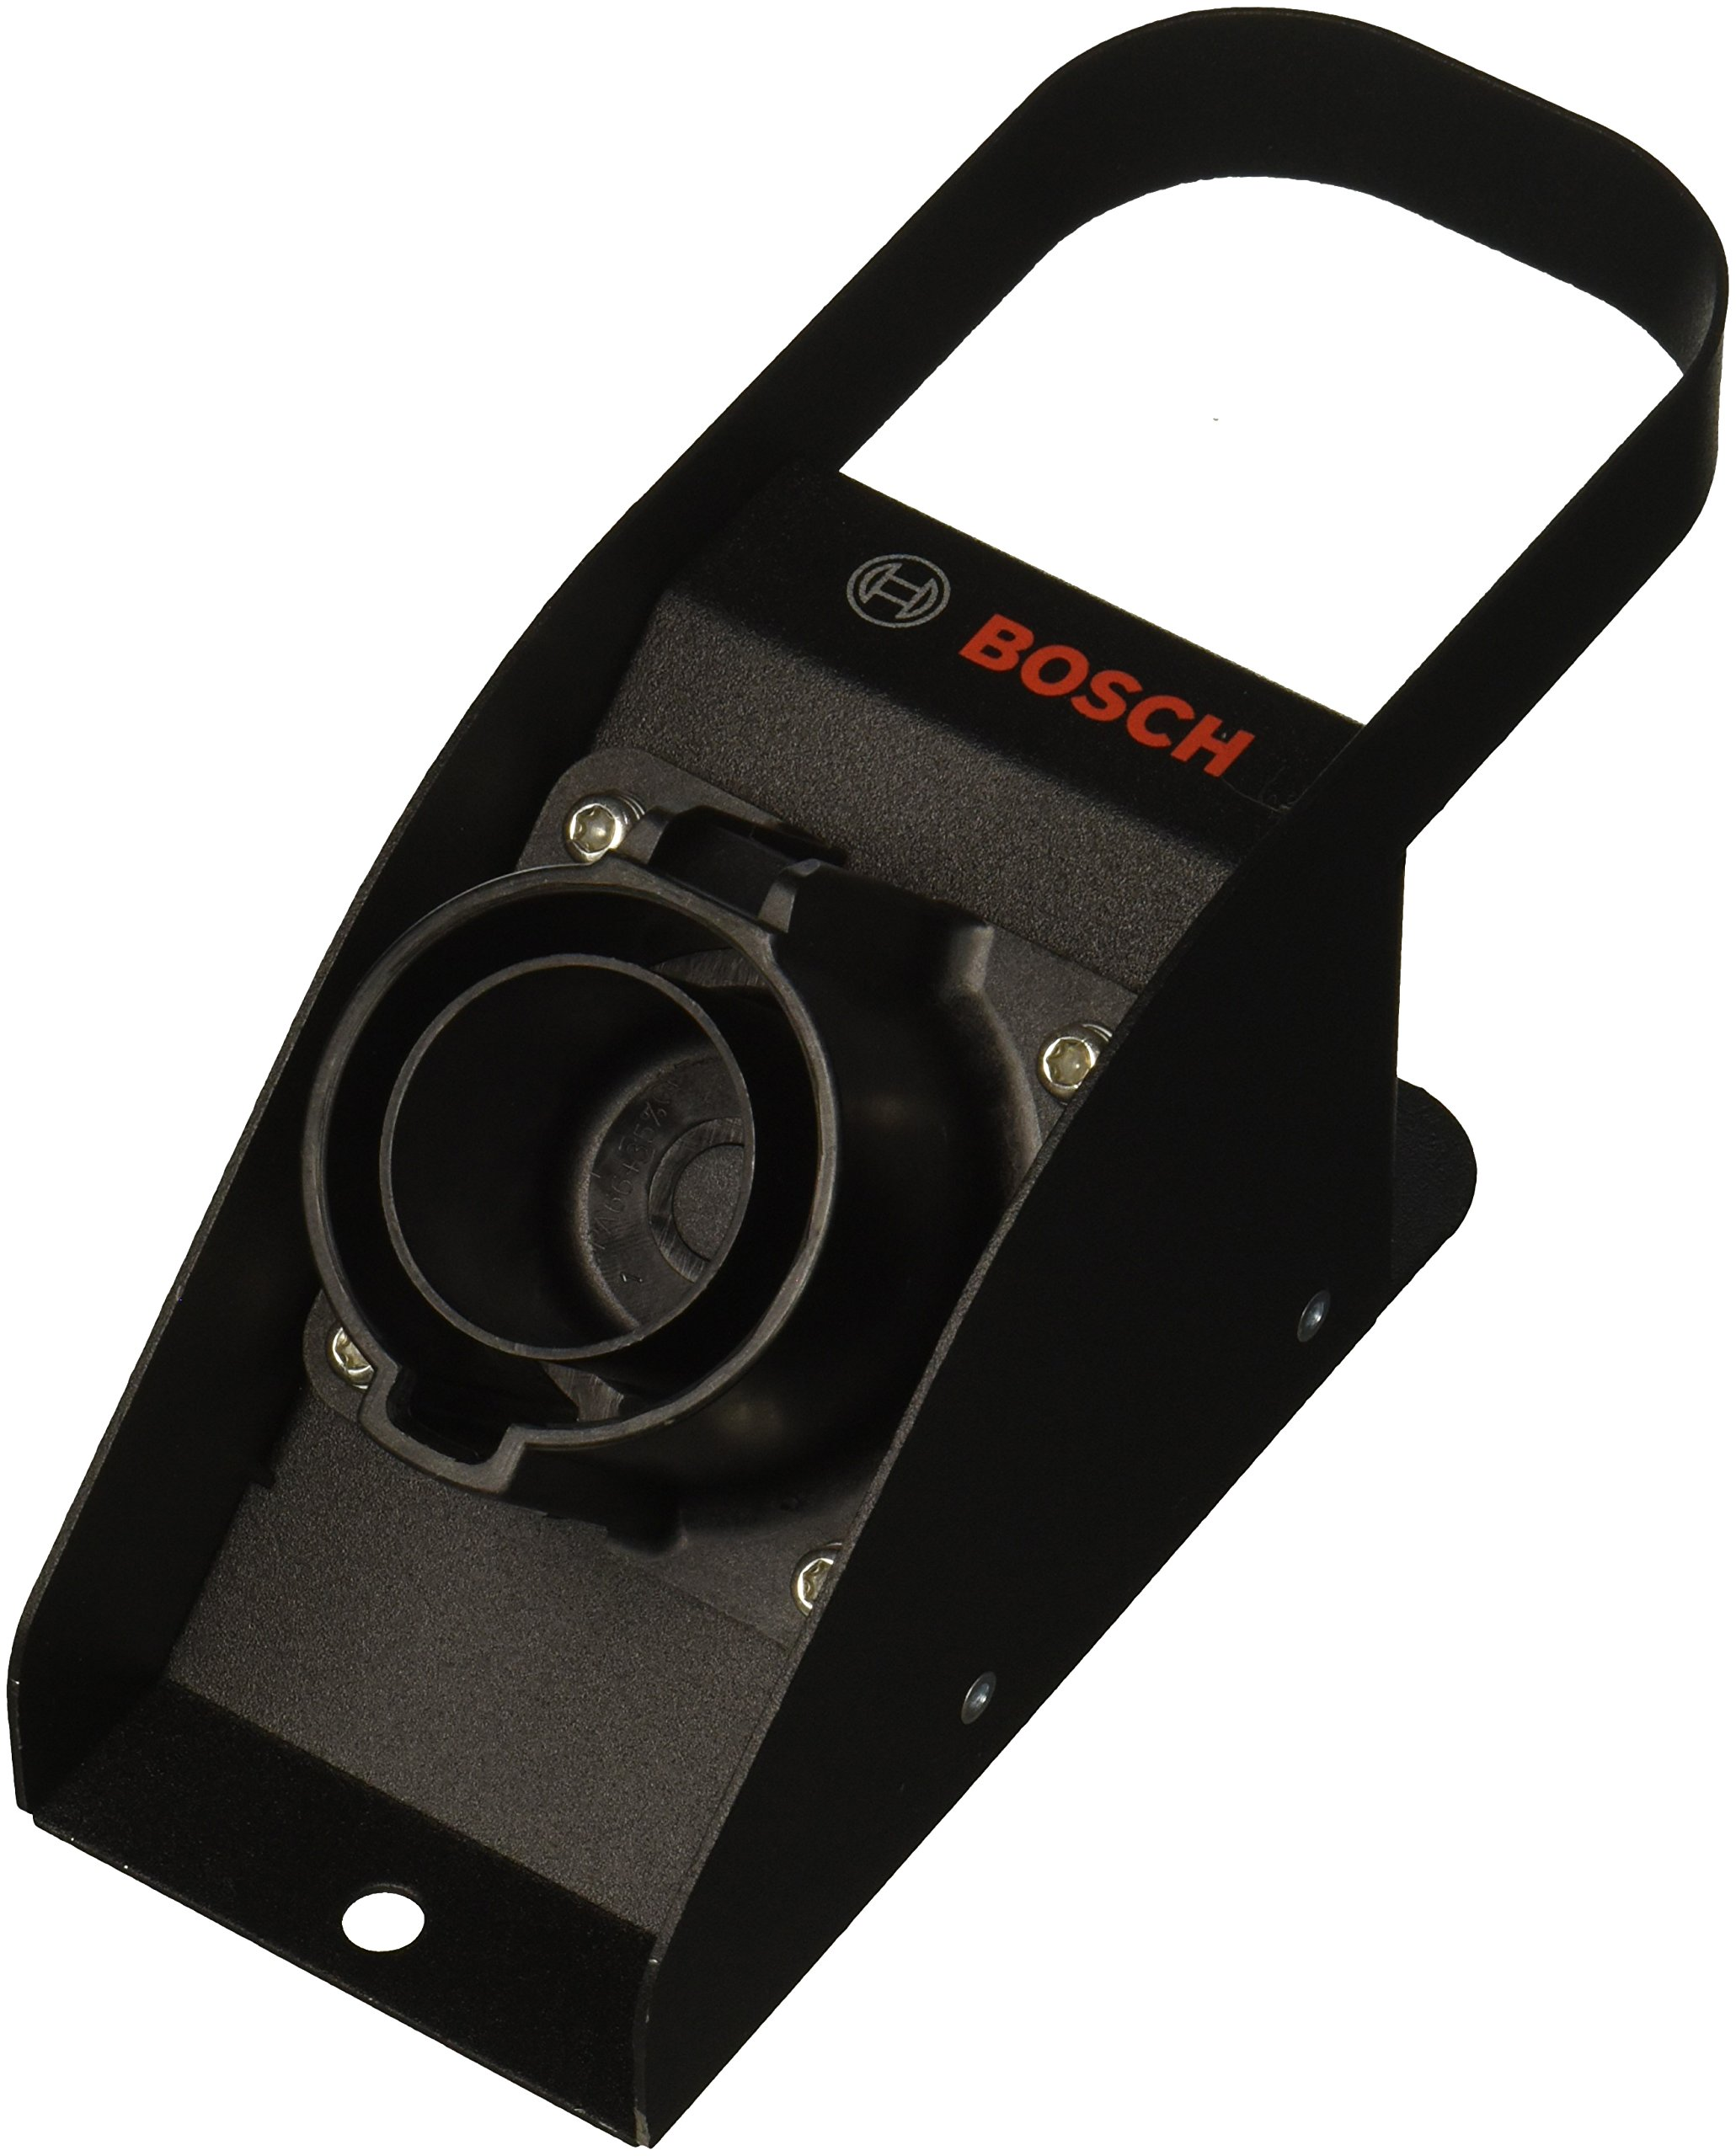 Bosch EL-51866-DOCK Bosch Level 2 Charger Service Cord and Coupler Dock by Bosch Automotive